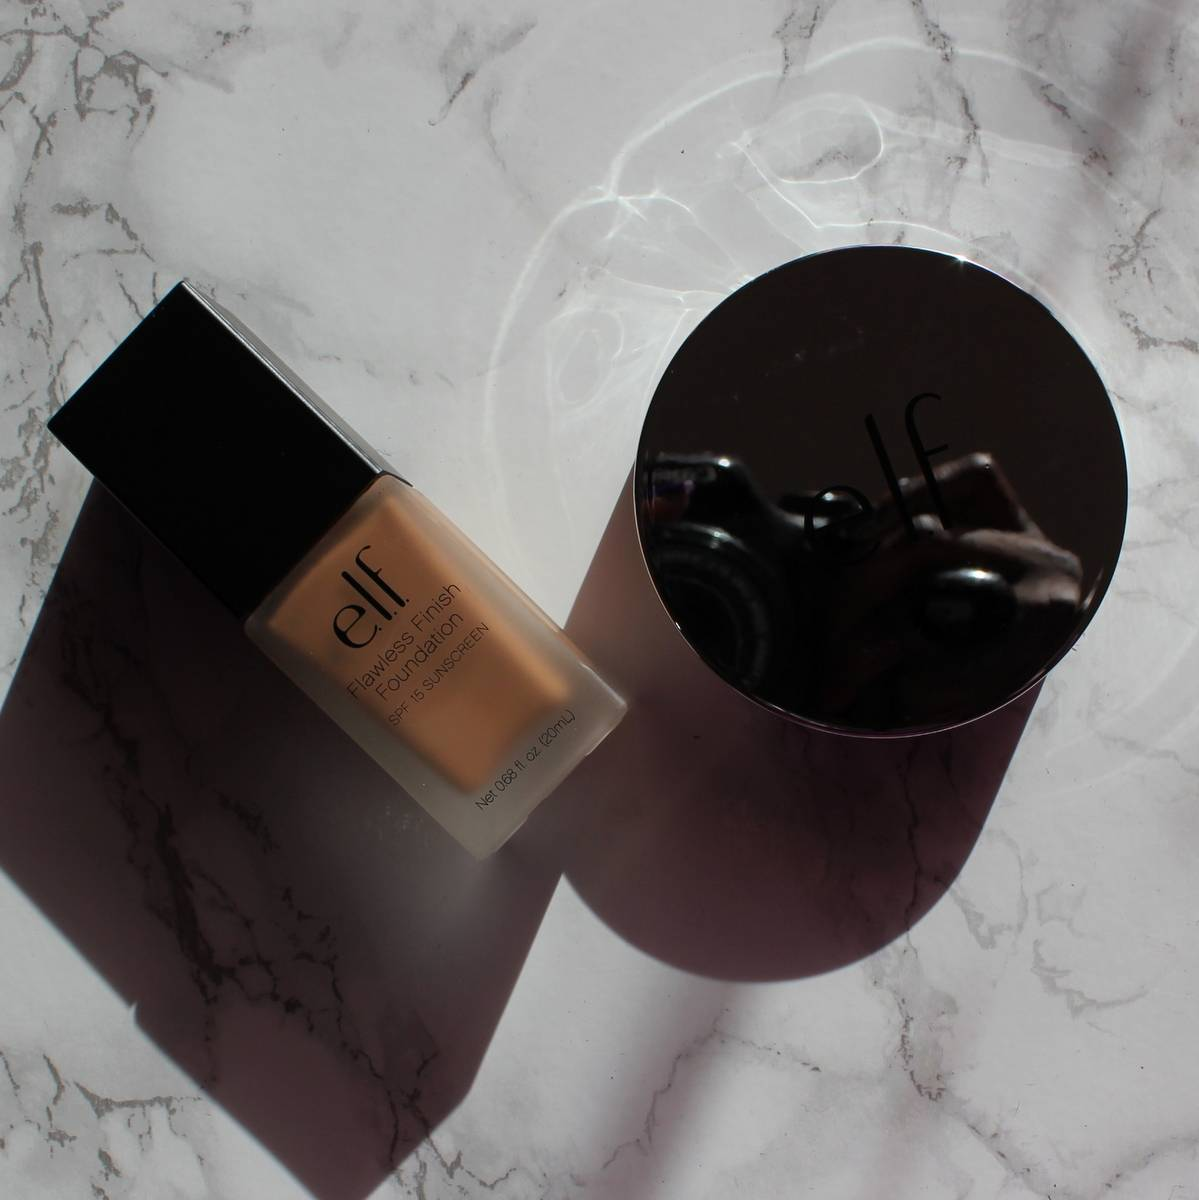 e.l.f cosmetics flawless finish foundation